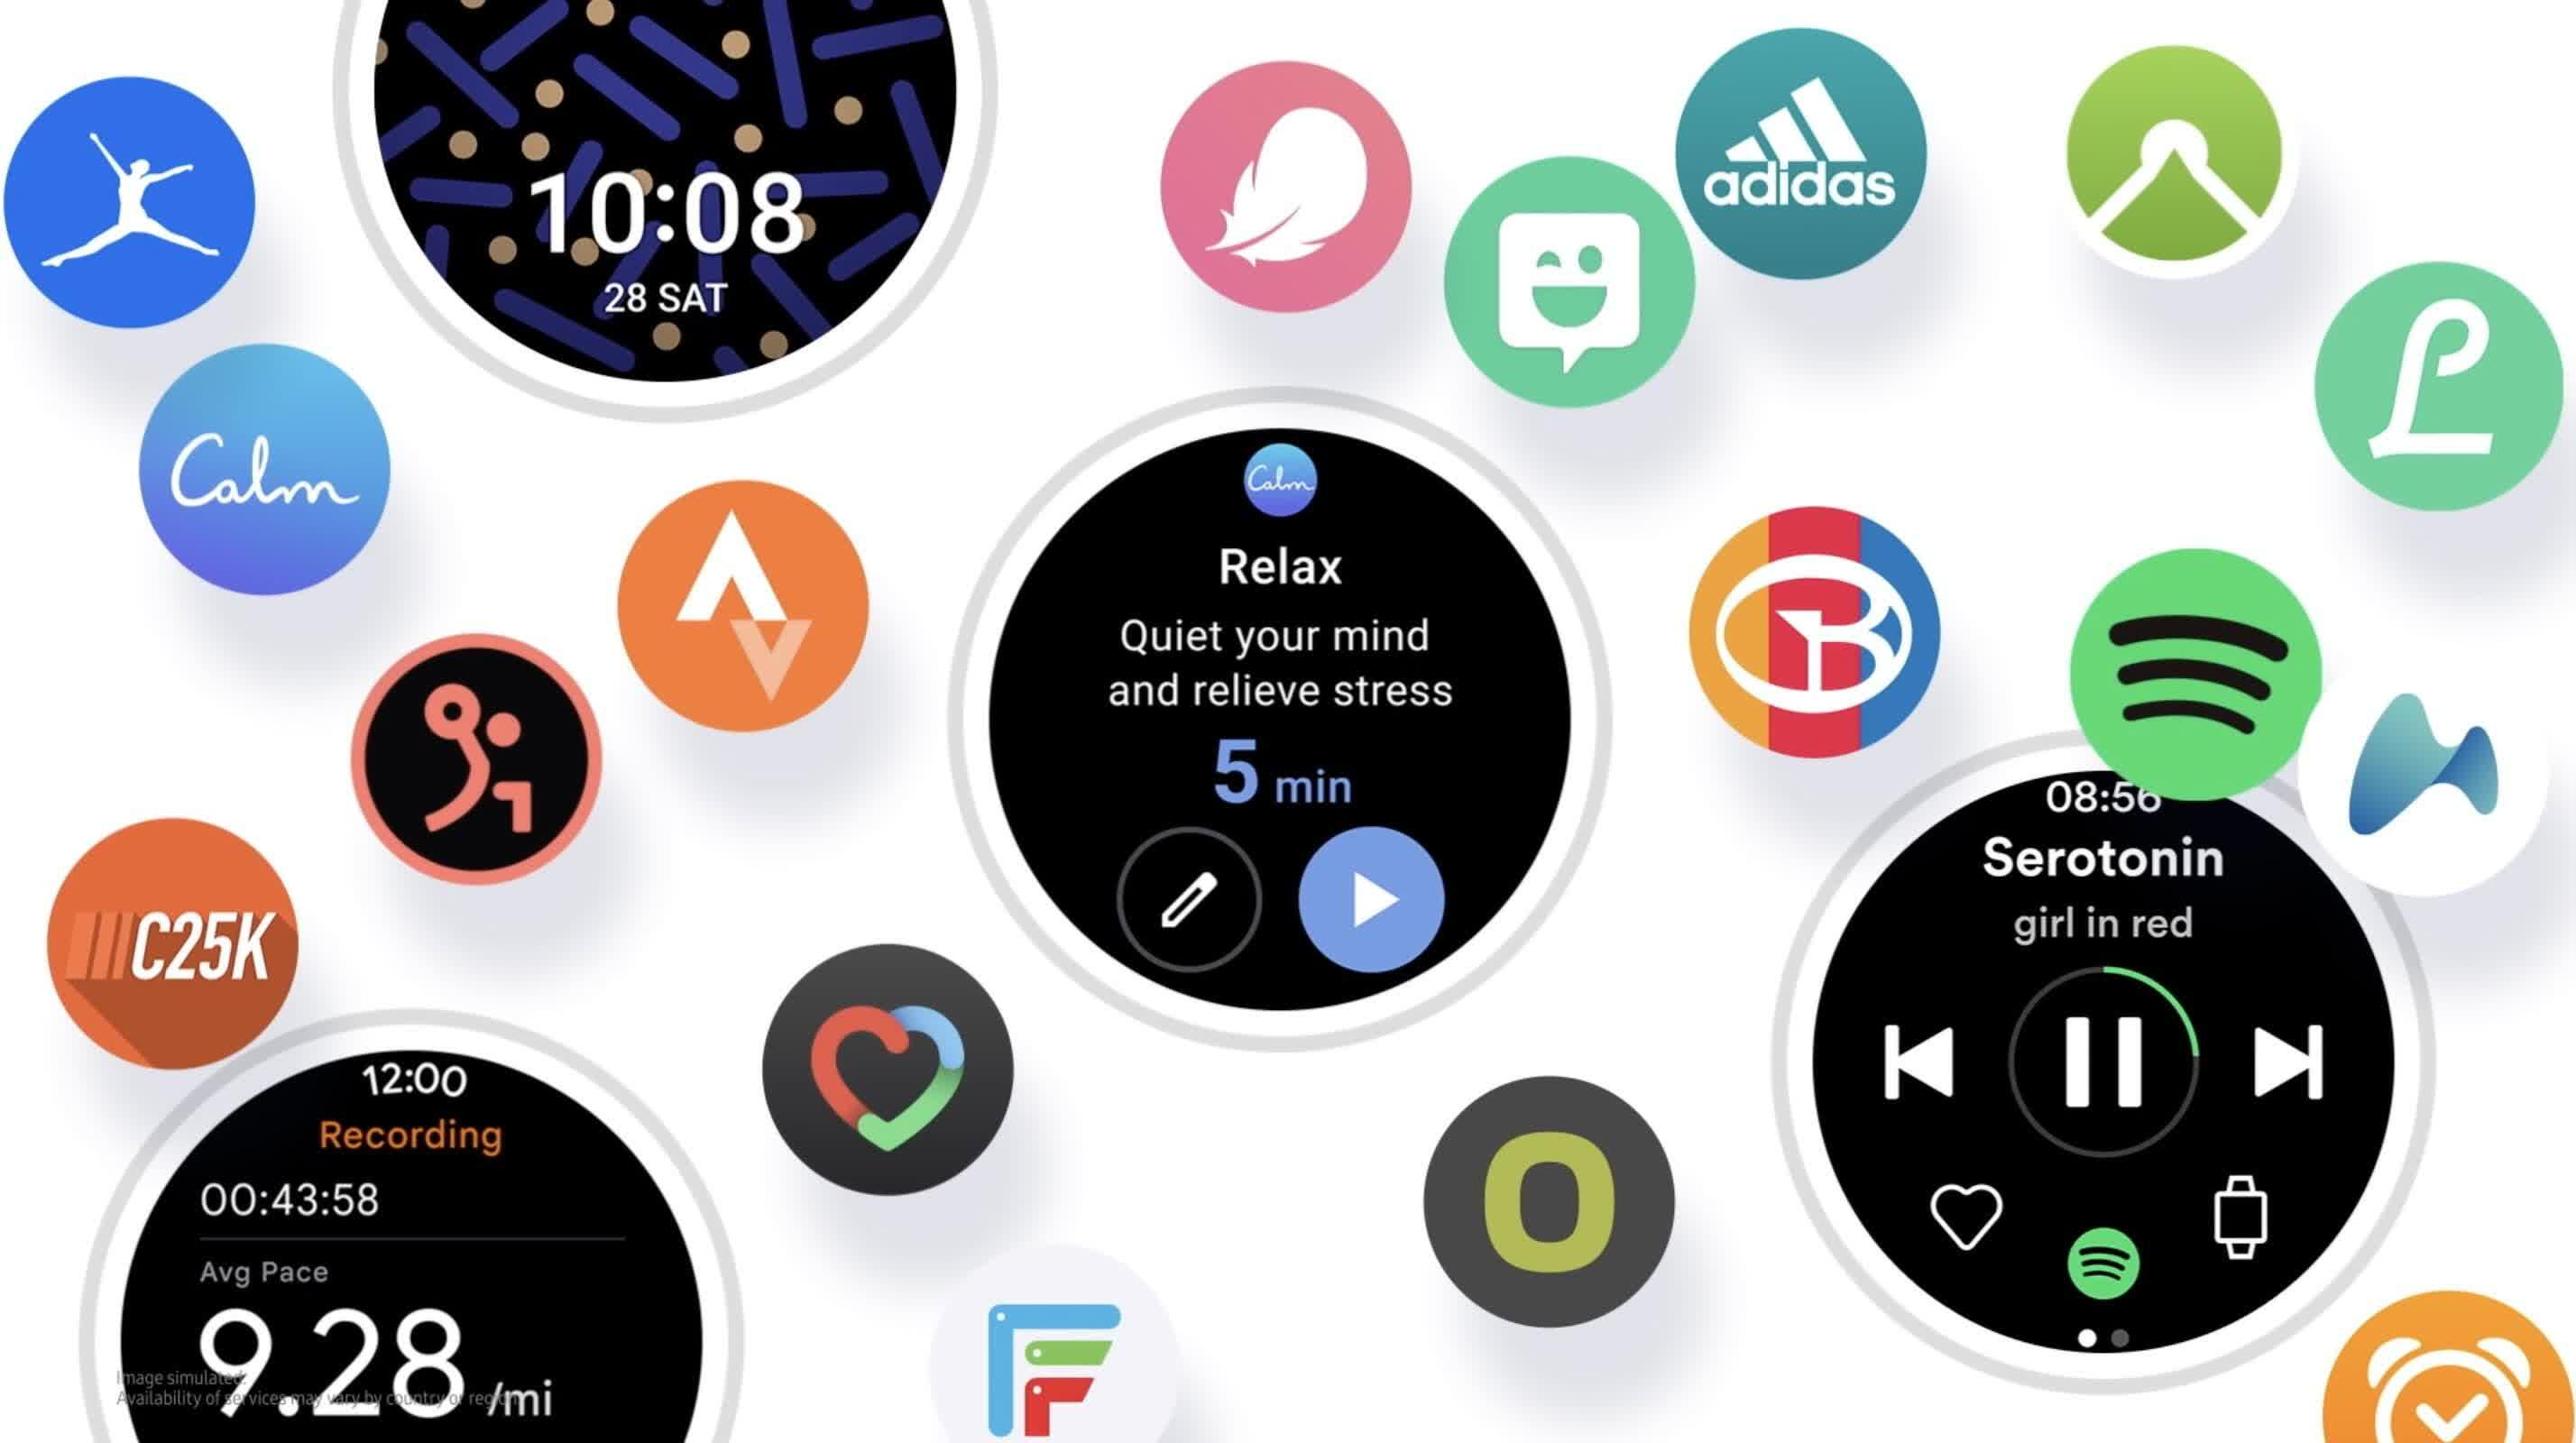 Google's revamped Wear OS won't arrive on many existing smartwatches